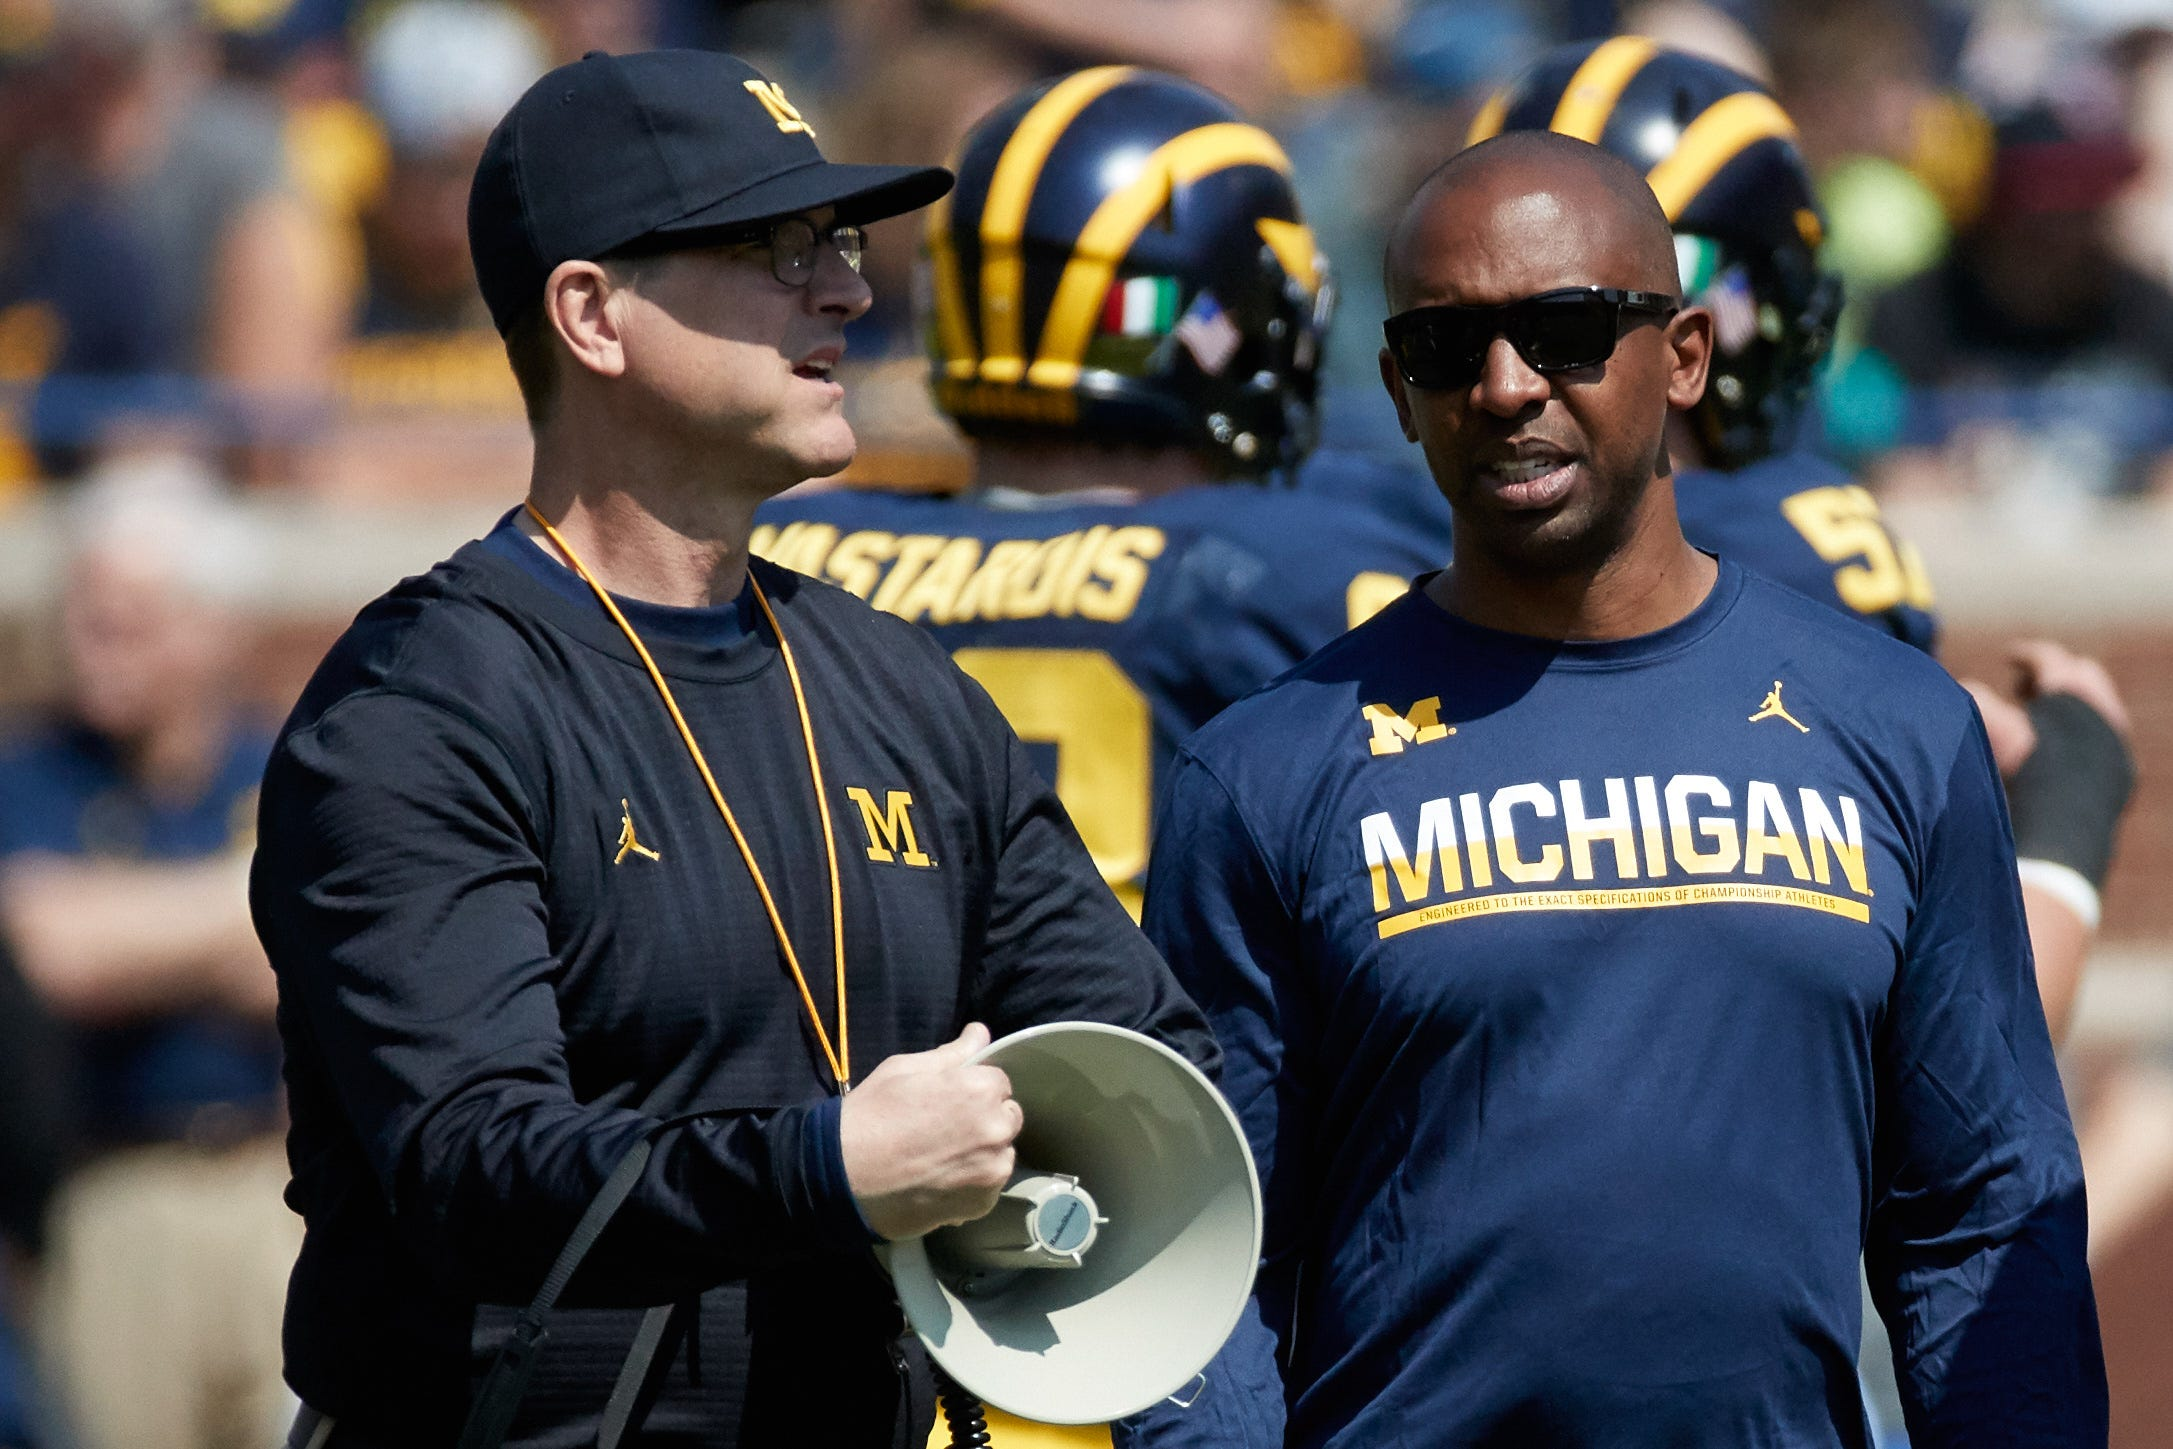 Pep Hamilton, assistant head coach and passing game